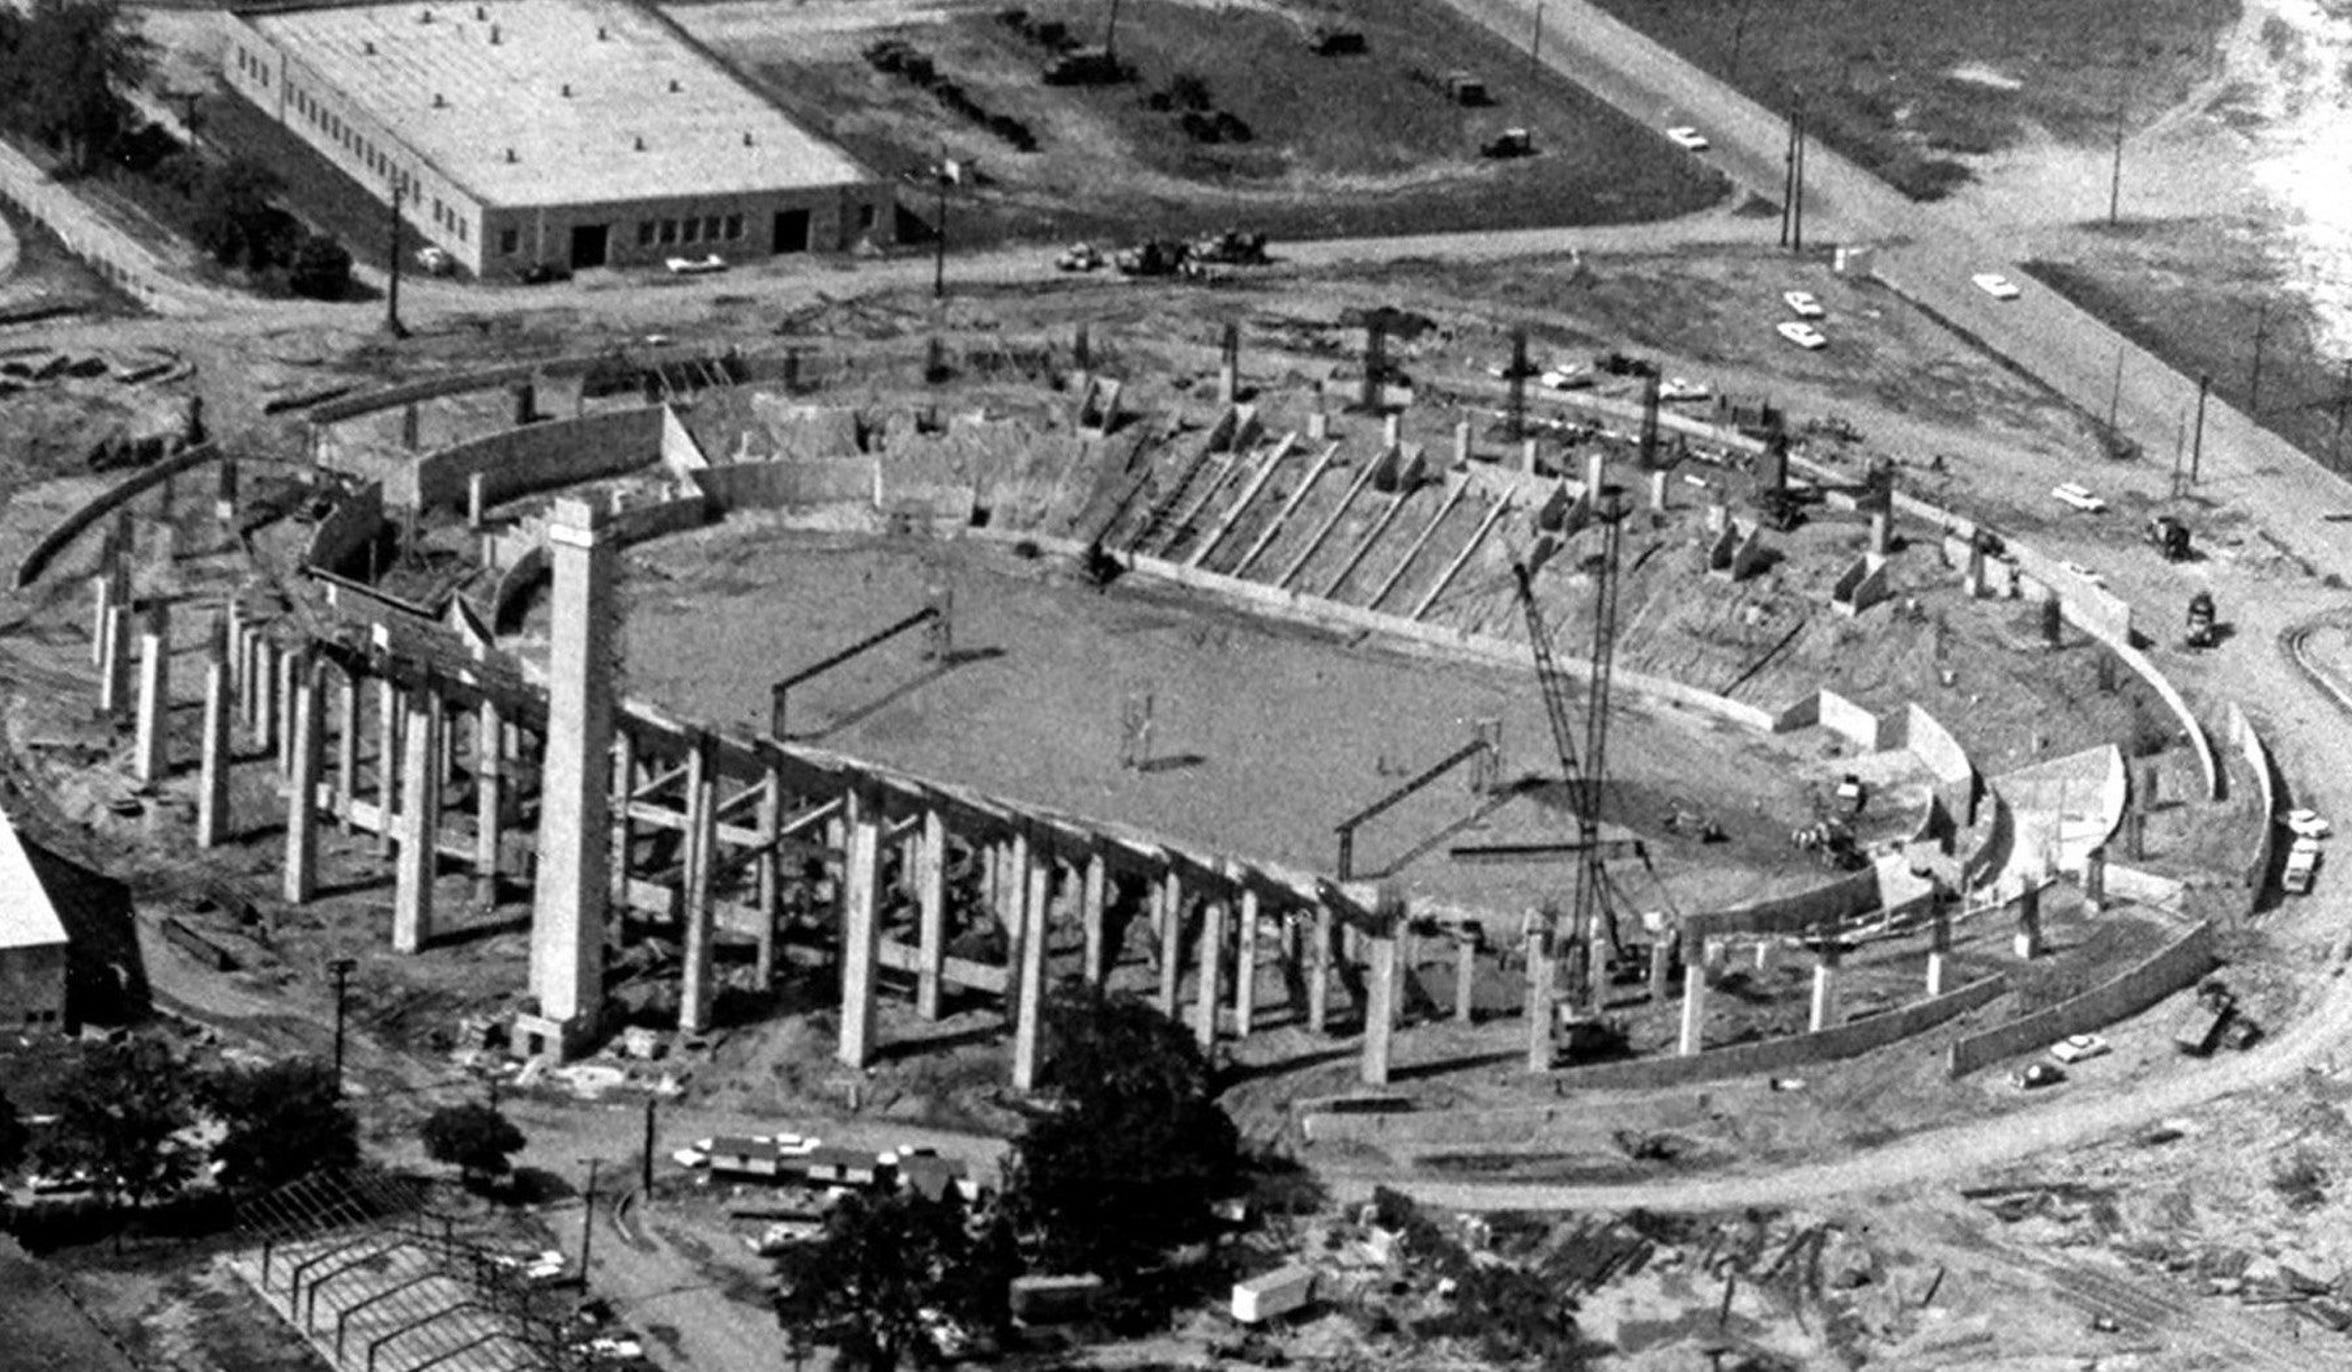 Memphis Memorial Stadium, later to be named Liberty Bowl, rises out of the ground at the Mid-South Fairgrounds in 1964. It opened in 1965 at a cost of $3.7 million.